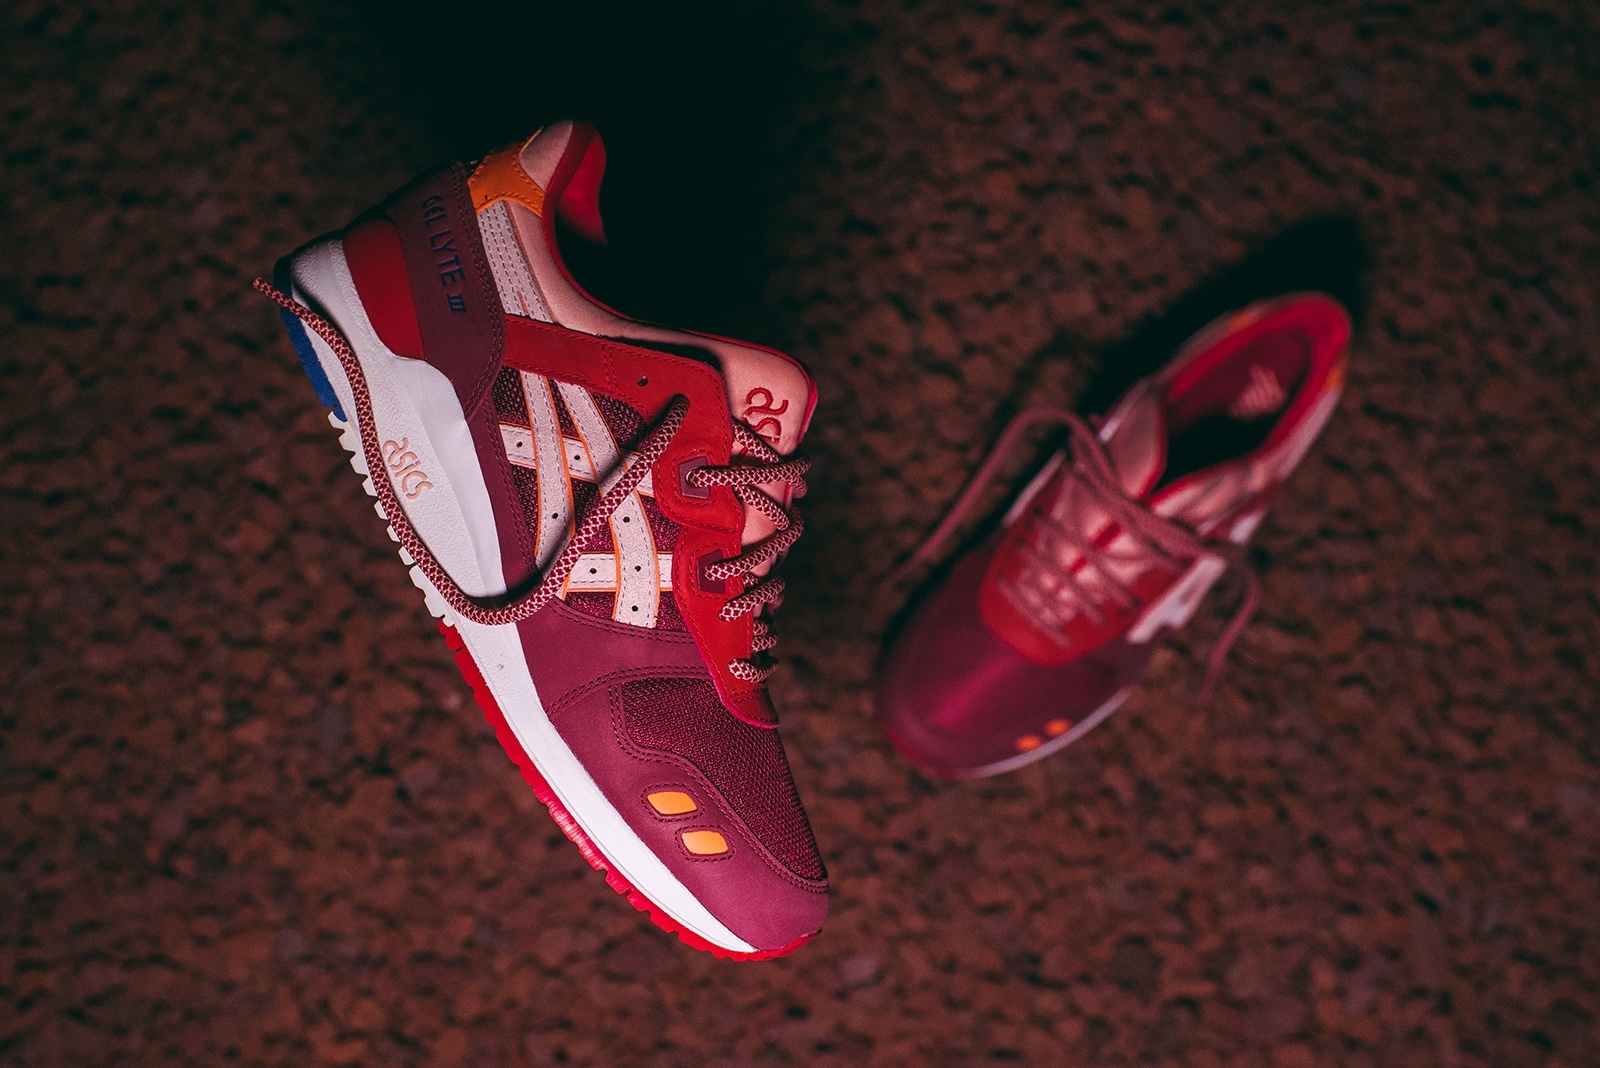 ronnie-fieg-asics-volcano-2-0-collection-2